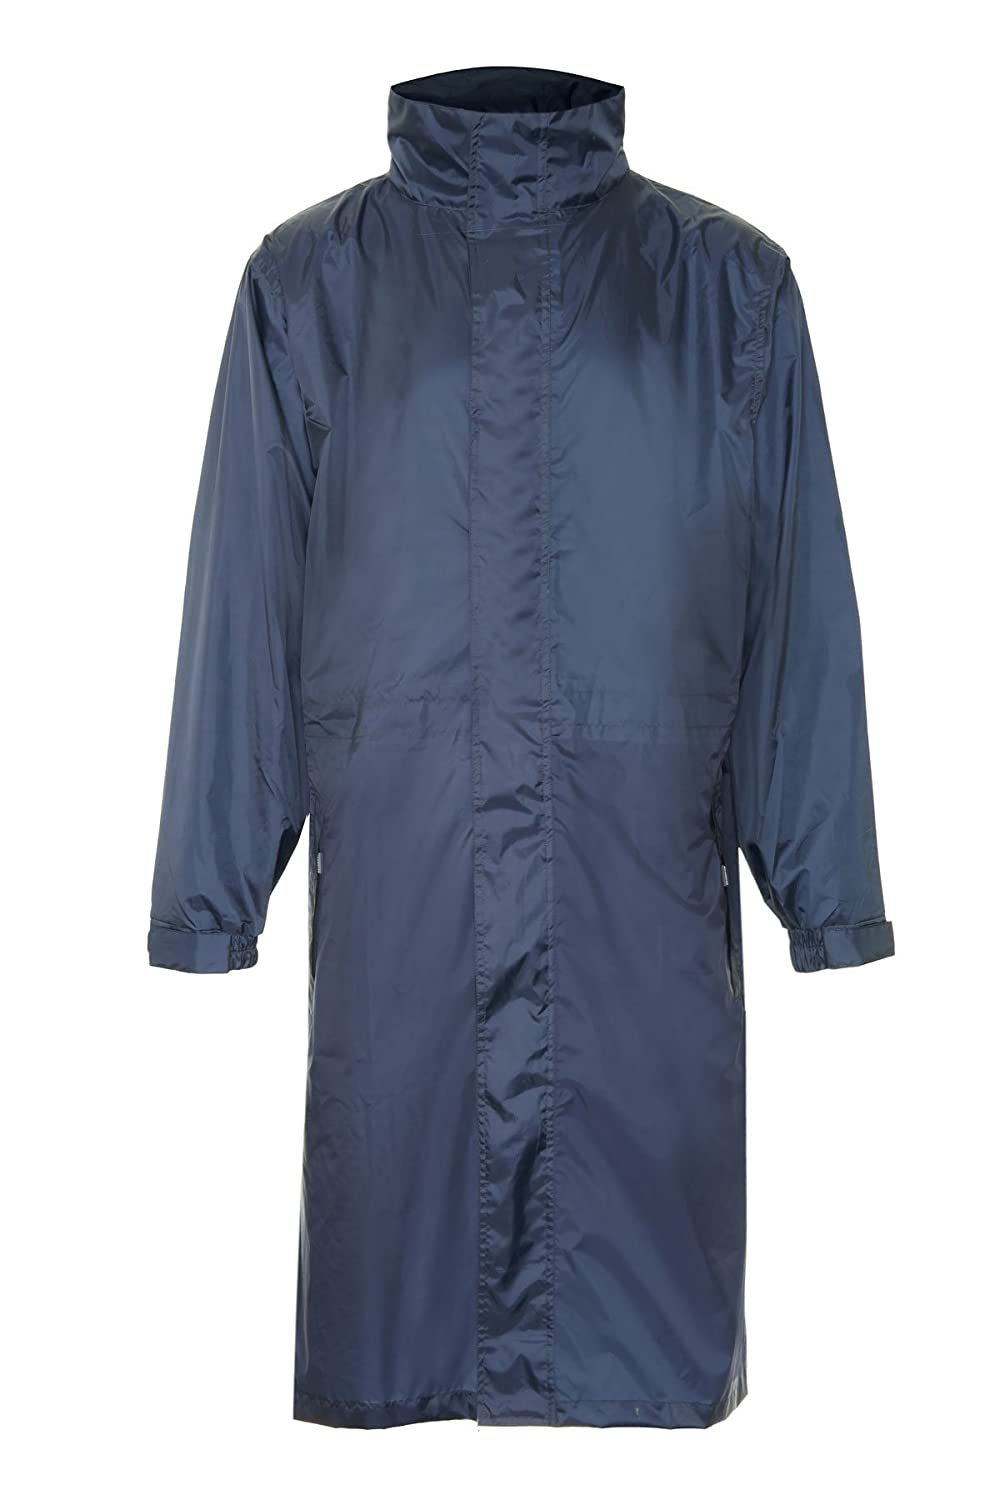 Champion Storm Unisex Waterproof & Breatchable Coat Long Pac a Mac Jacket Was £40 UWATER-2673 CH2673